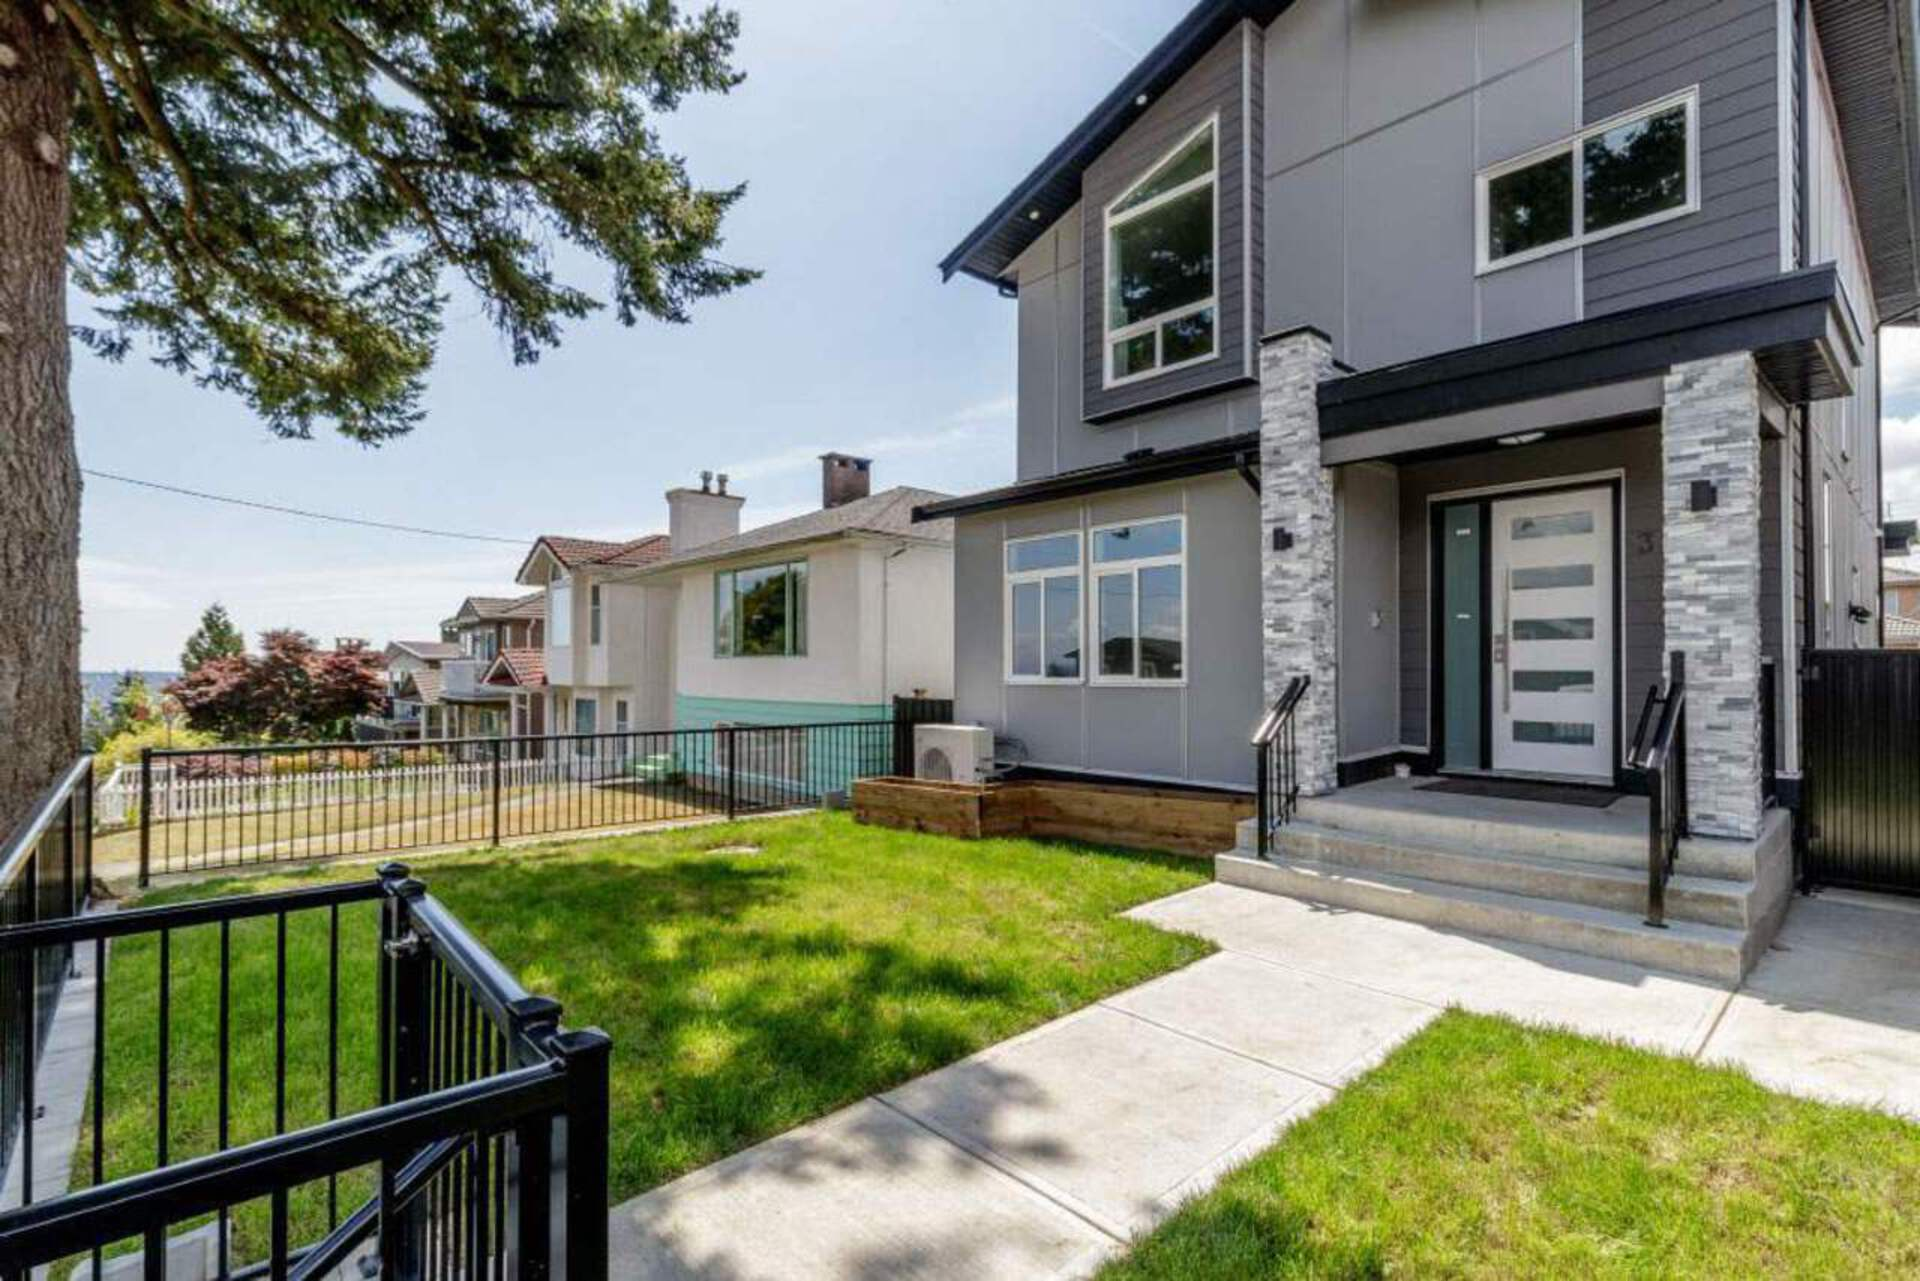 33-howard-avenue-capitol-hill-bn-burnaby-north-23 at 33 Howard Avenue, Capitol Hill BN, Burnaby North